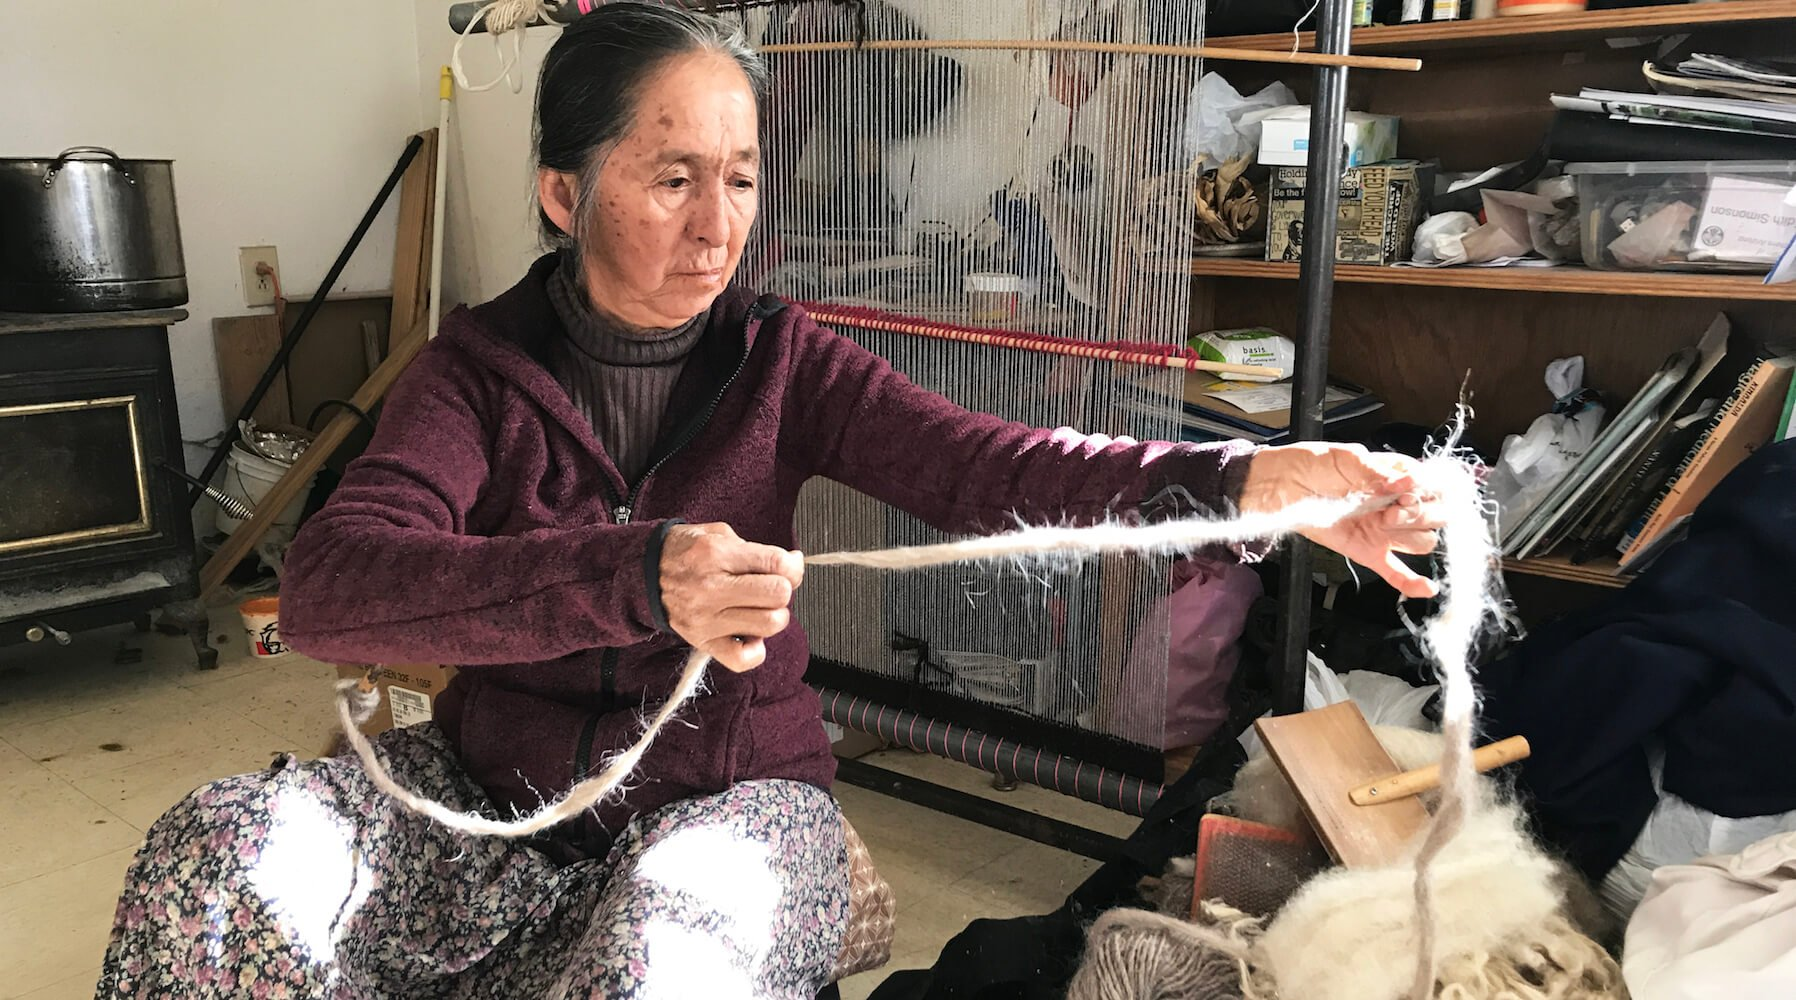 Navajo woman weaving sheep's wool